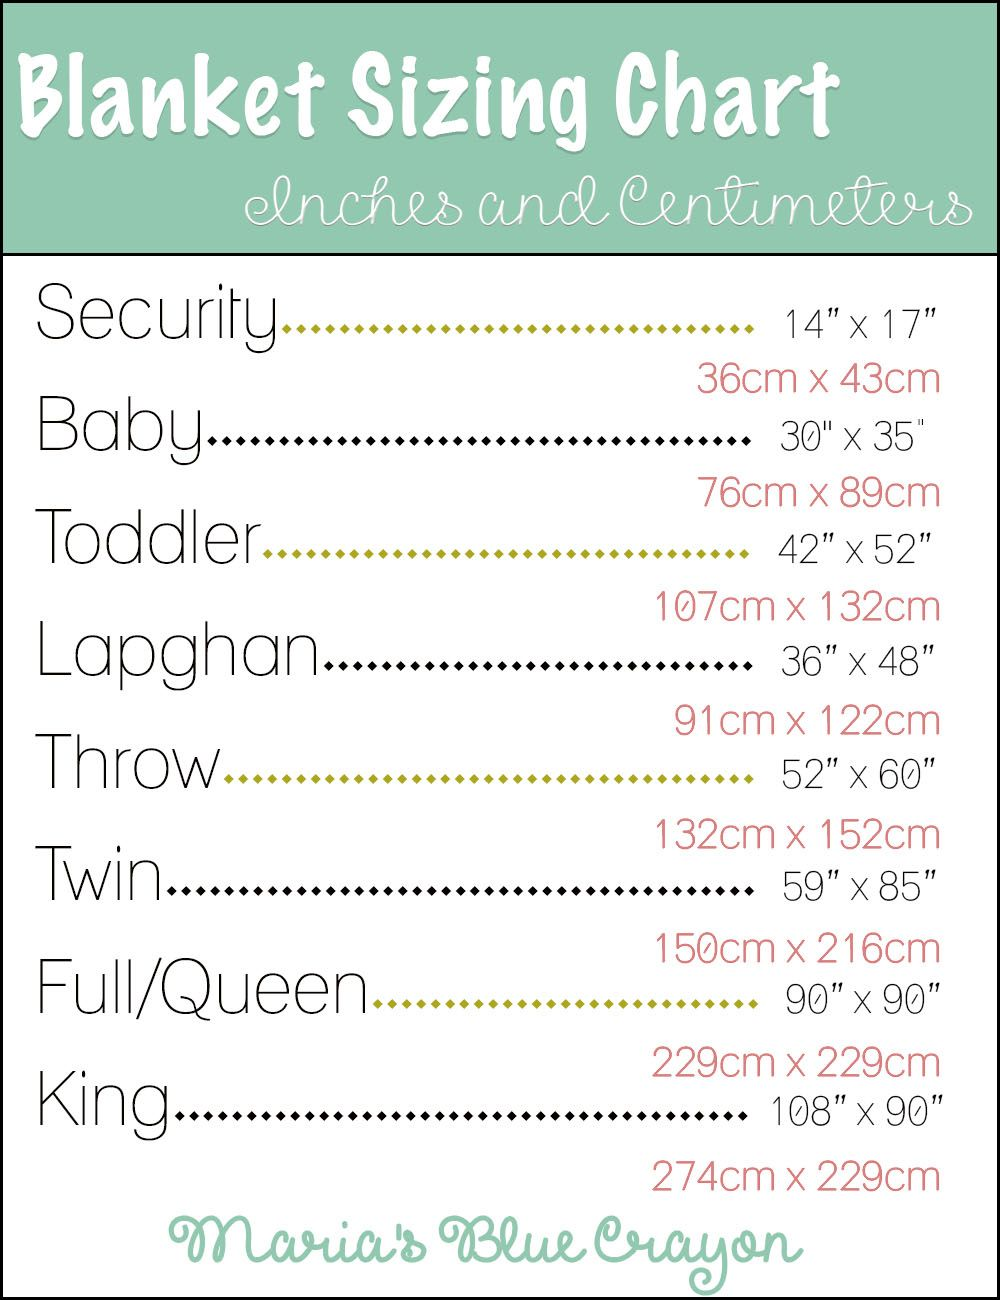 hight resolution of blanket sizing in inches and centimeters chart to help guide you in sizing your blanket knit crochet etc